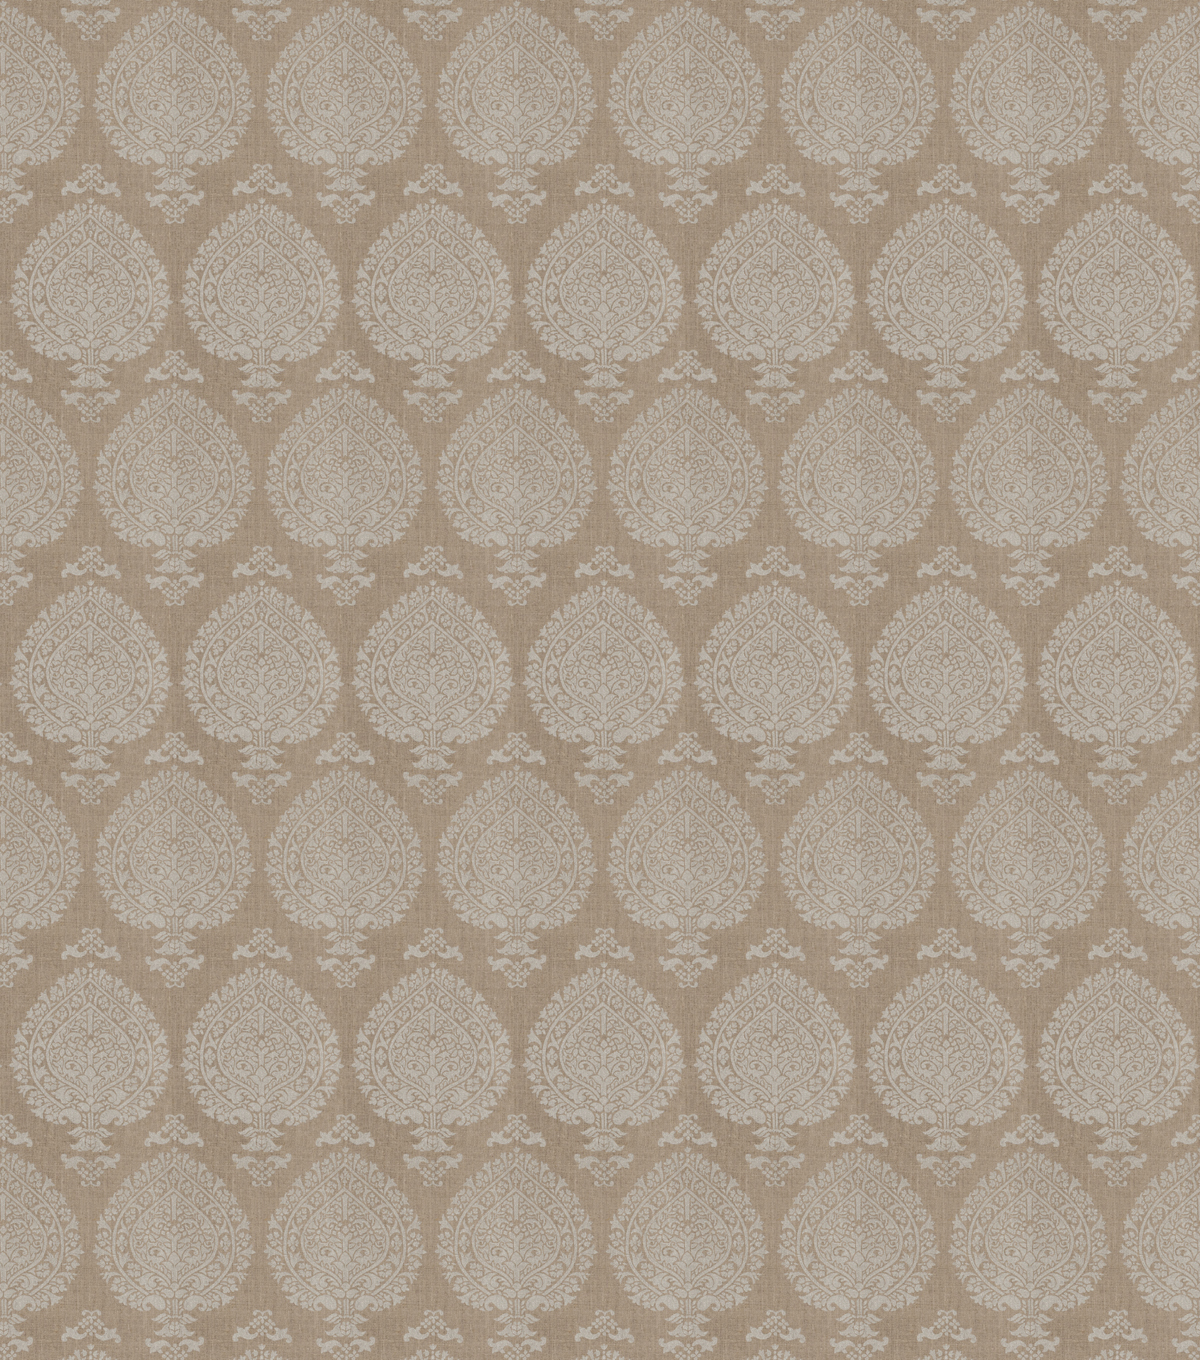 Eaton Square Multi-Purpose Decor Fabric 54\u0022-Wheaton/Linen Silver